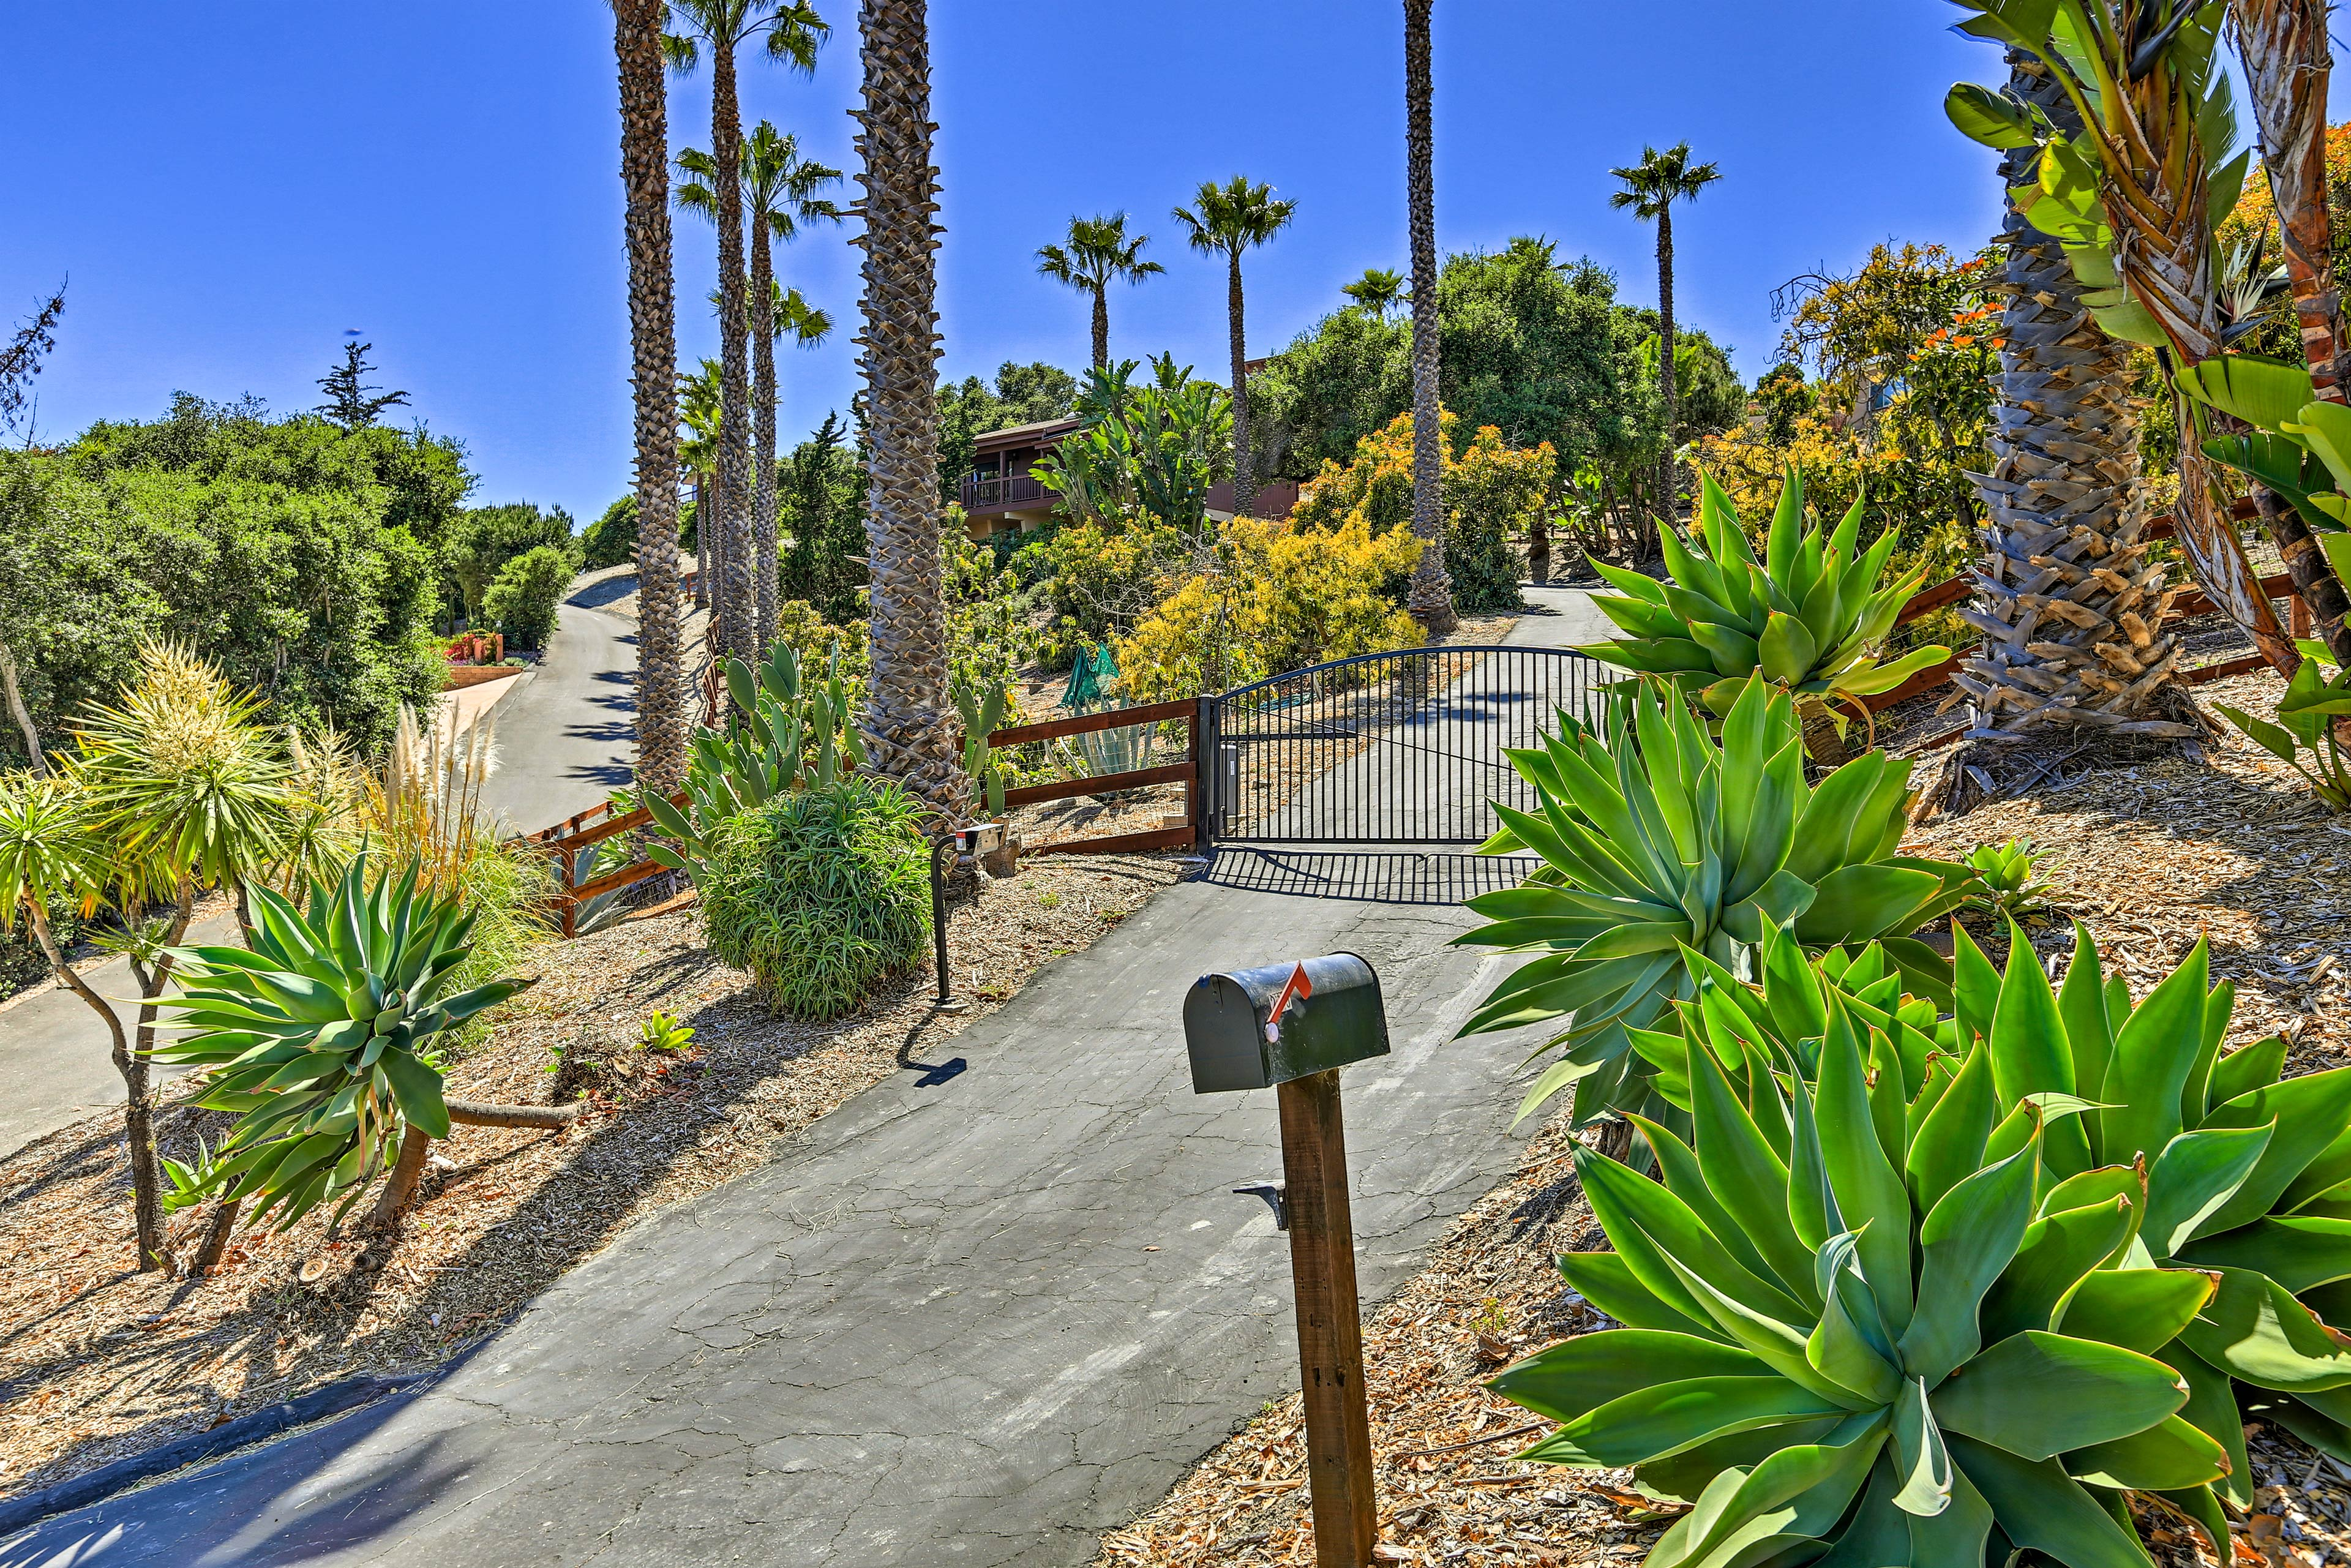 The village of Arroyo Grande is just a 5-minute stroll away.